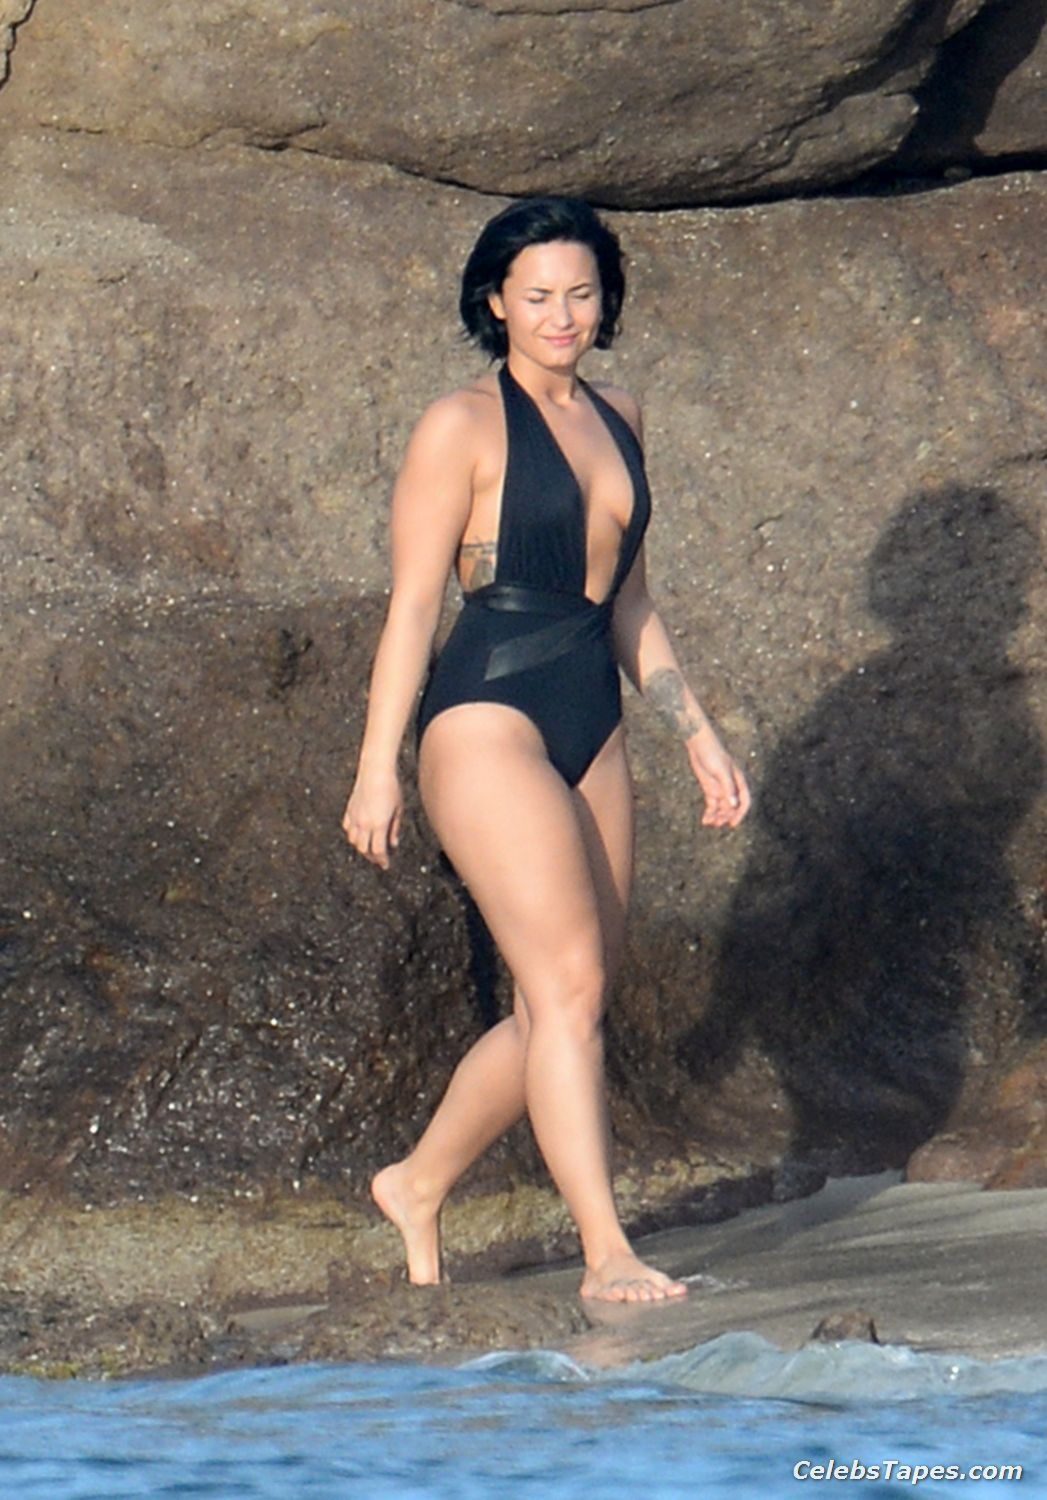 Demi Lovato Full Frontal Posing Photos Demi Lovato Booty In Tiny Bikini Demi Lovato